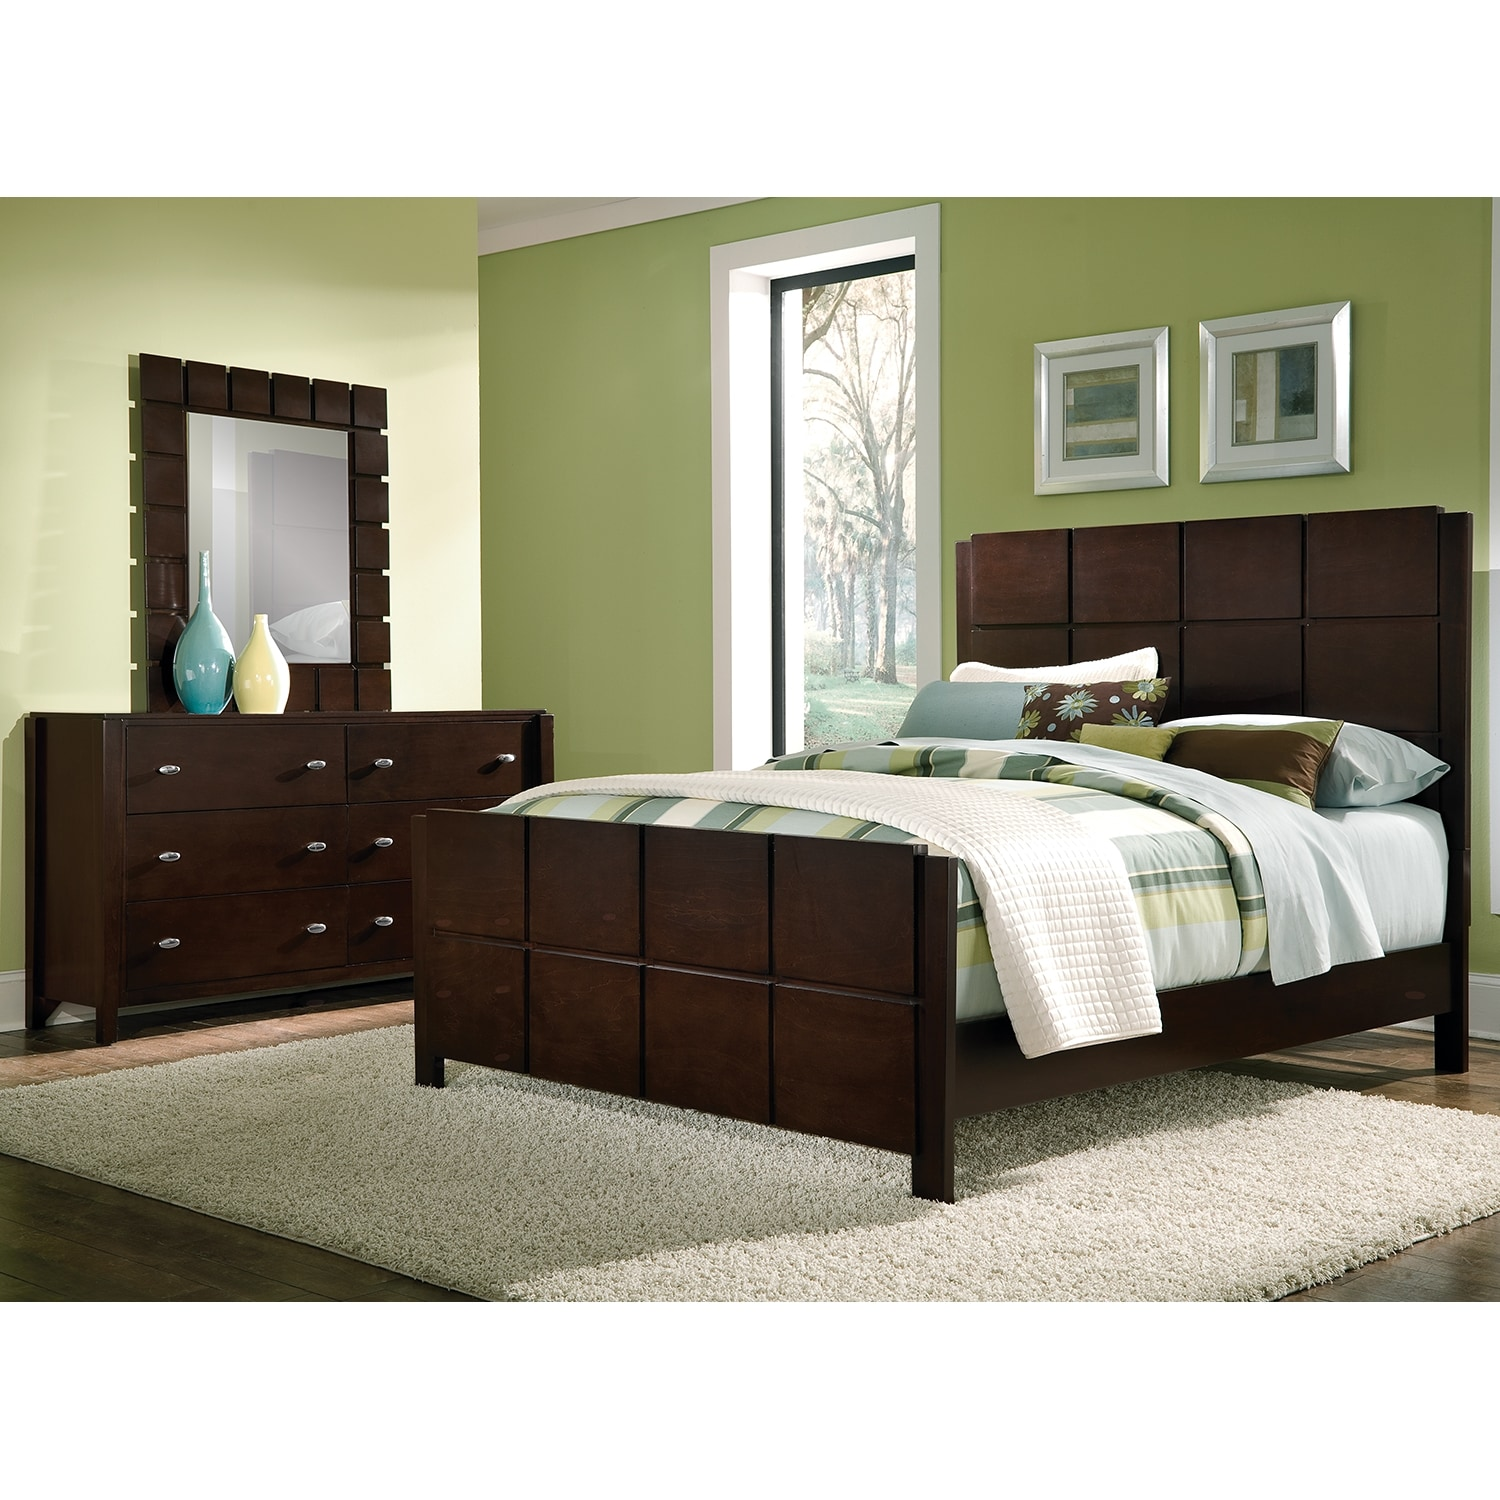 Mosaic 5 piece king bedroom set dark brown american for 5 bedroom